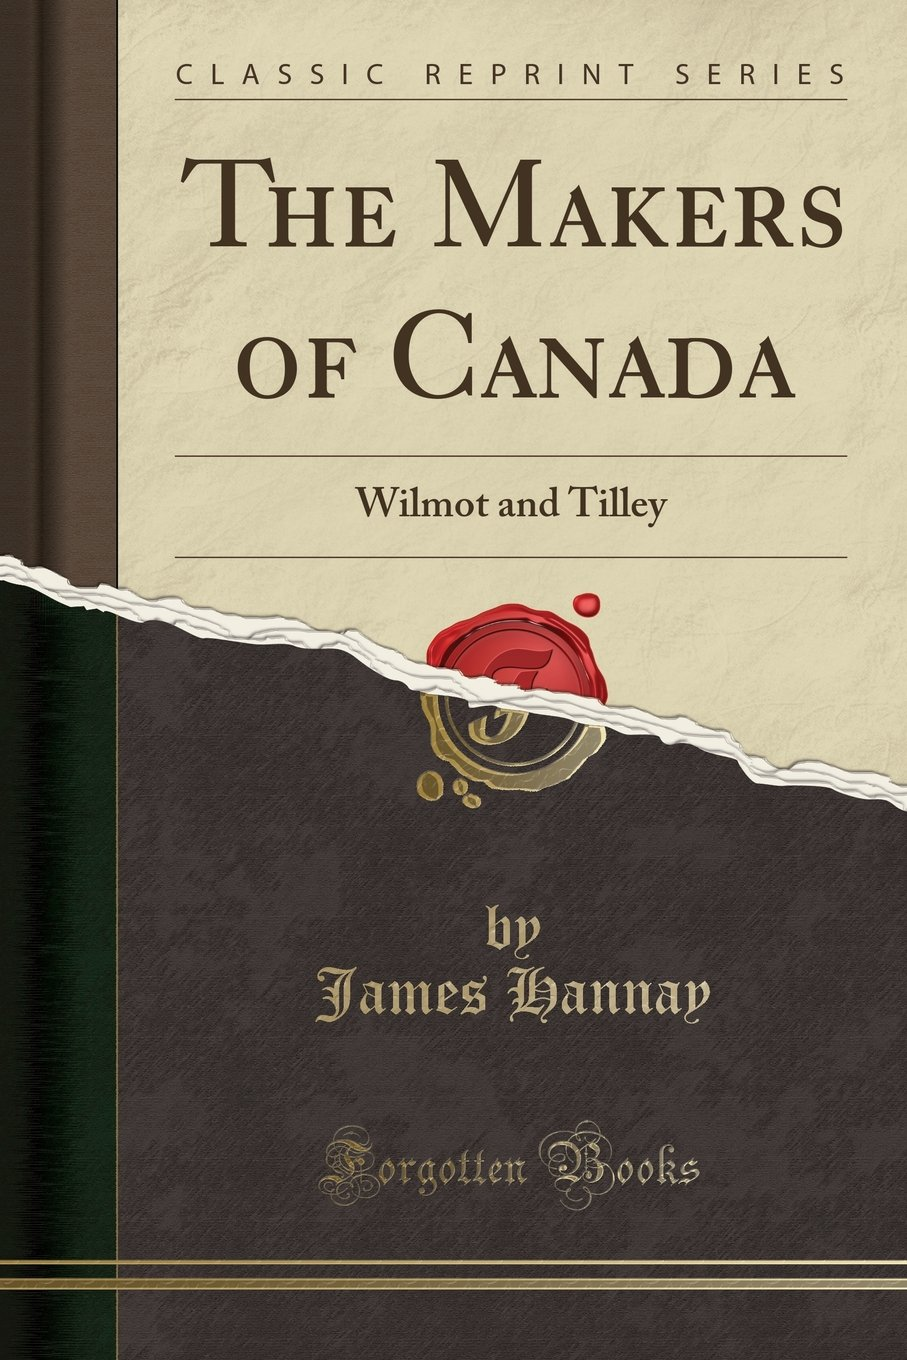 More Books by James Hannay